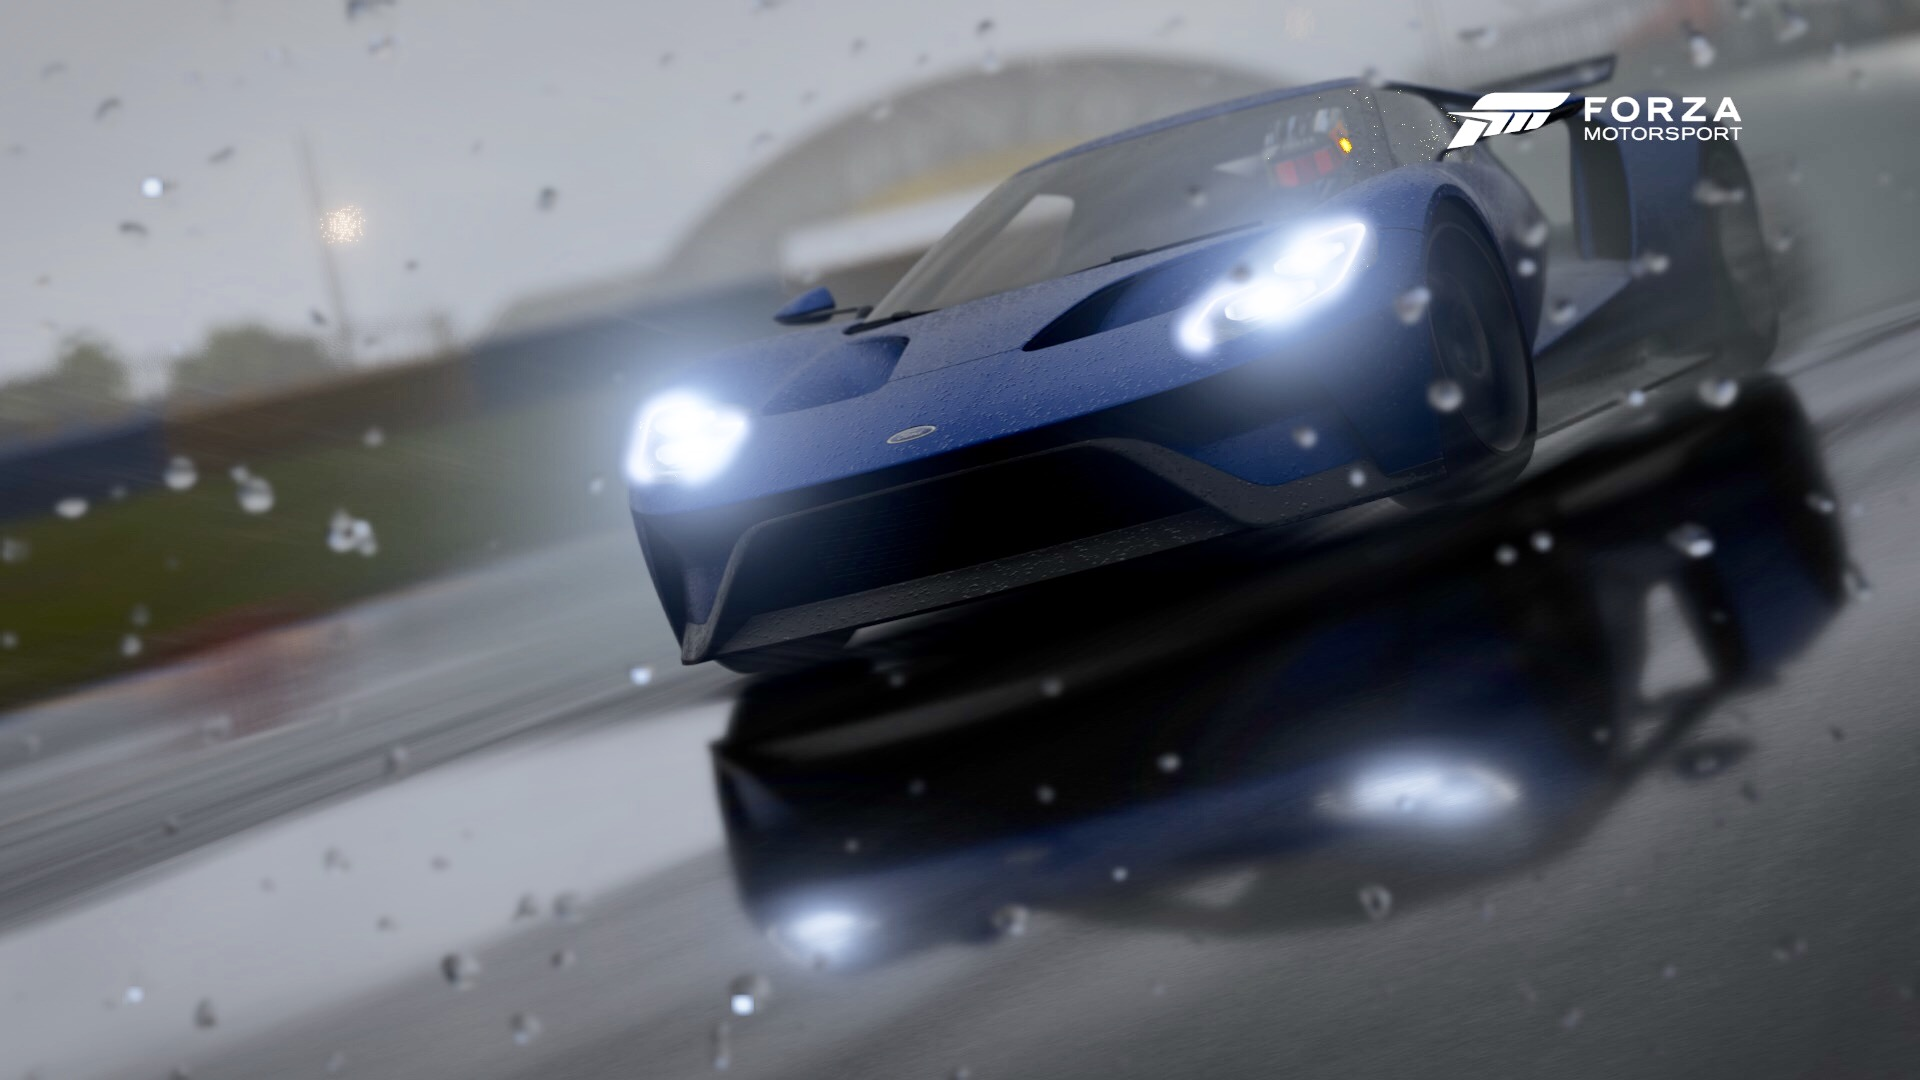 Forza Motorsport 7 Wallpapers Ultra Hd Gaming Backgrounds: [49+] Forza 6 HD Wallpapers On WallpaperSafari